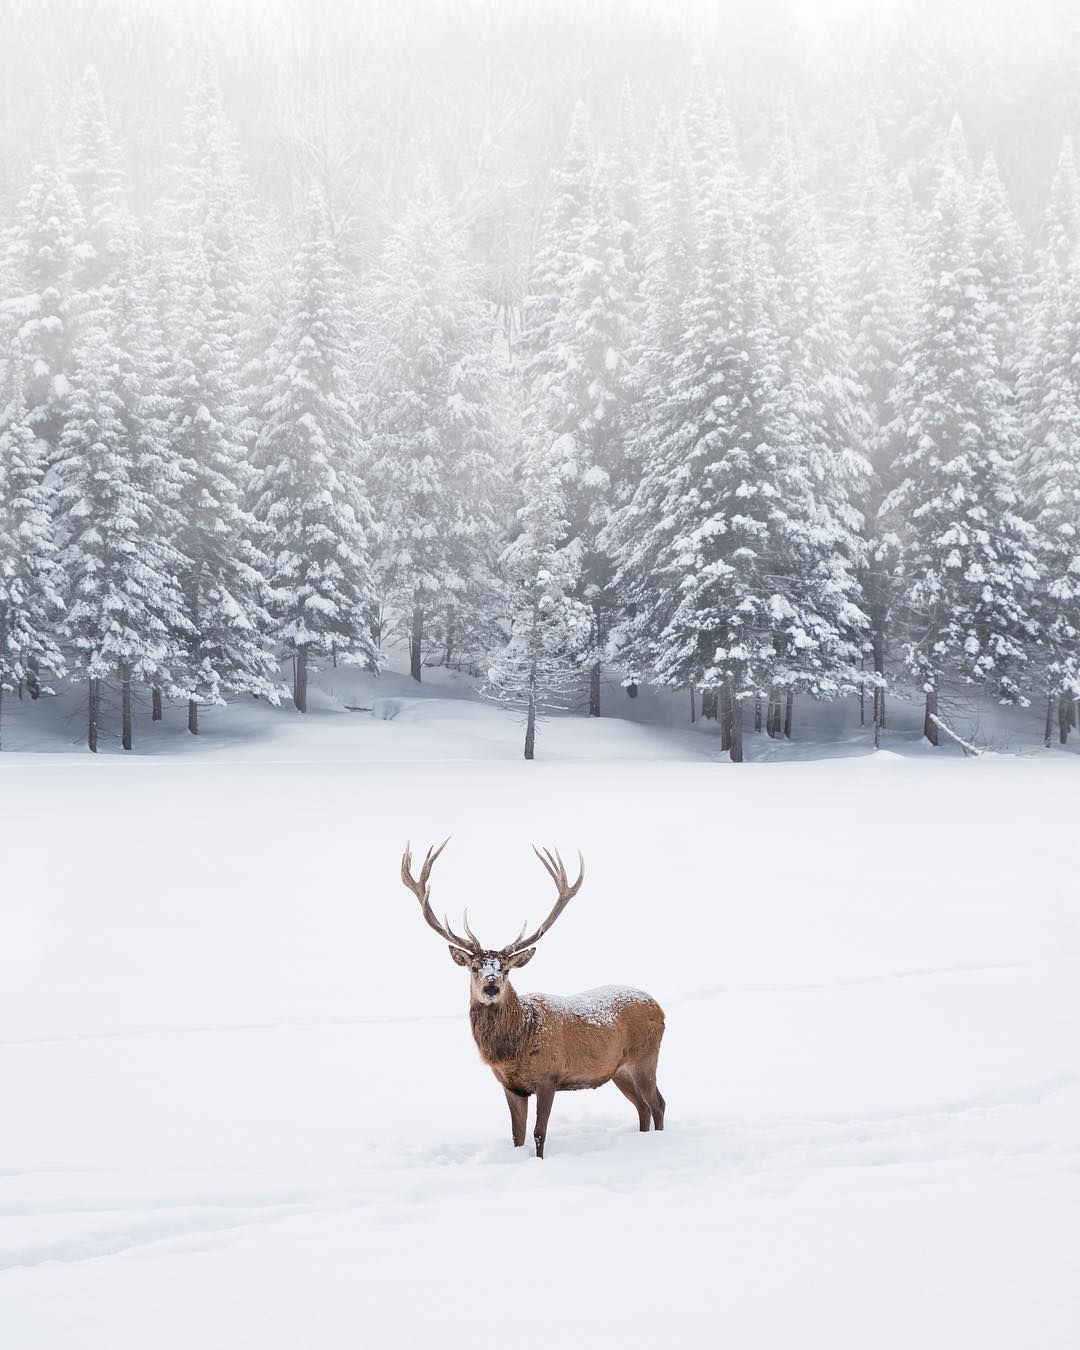 Parc Omega is stunning to explore in the winter. You can keep warm inside your car as you drive past all the Canadian animals, which are extra fluffy with their winter coats of fur.